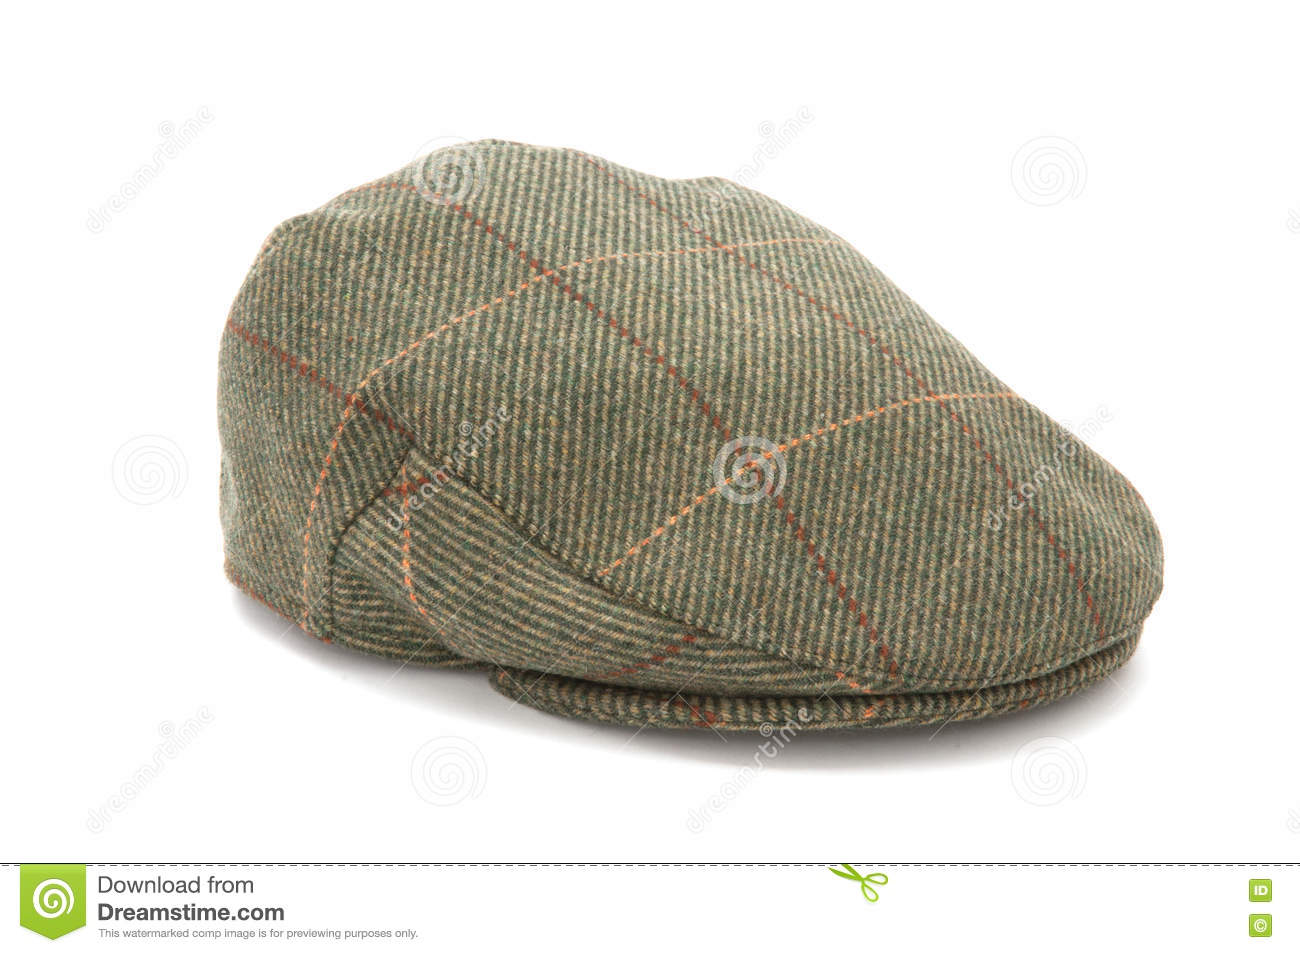 bff50266a09 Green Tweed Hunting Flat Cap Stock Image - Image of sport